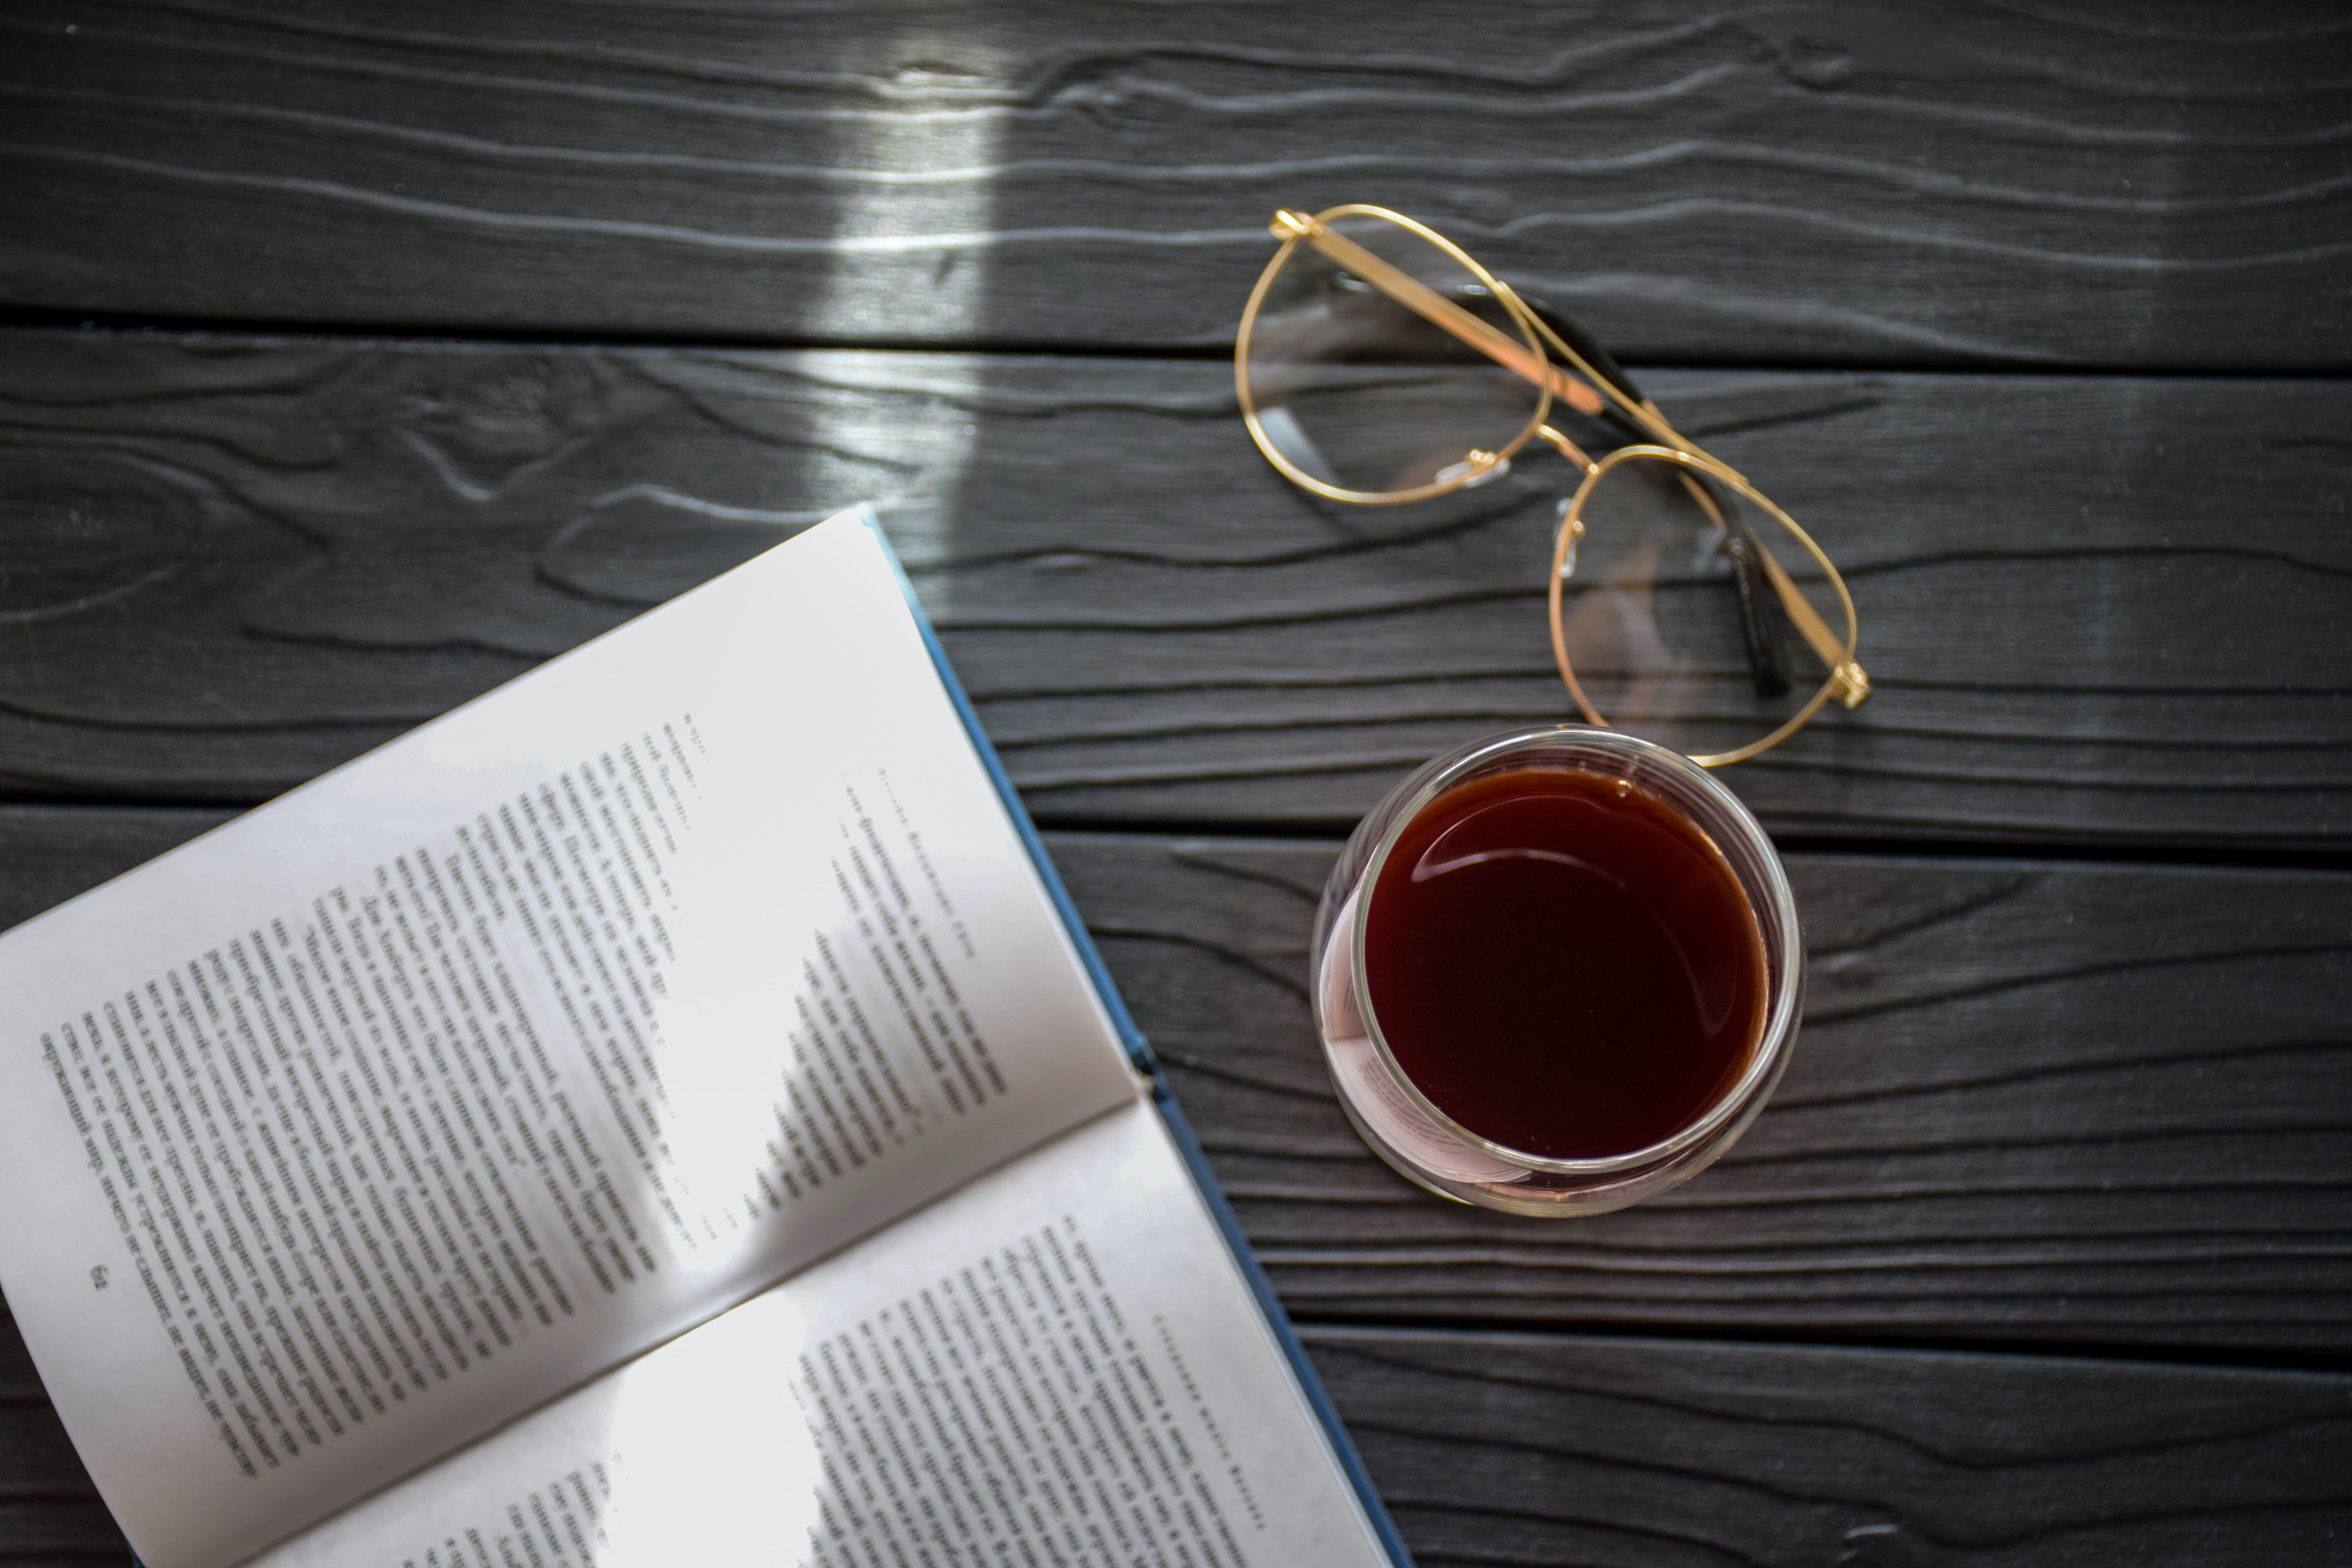 book and eyeglasses beside beverage in glass on gray wood planks